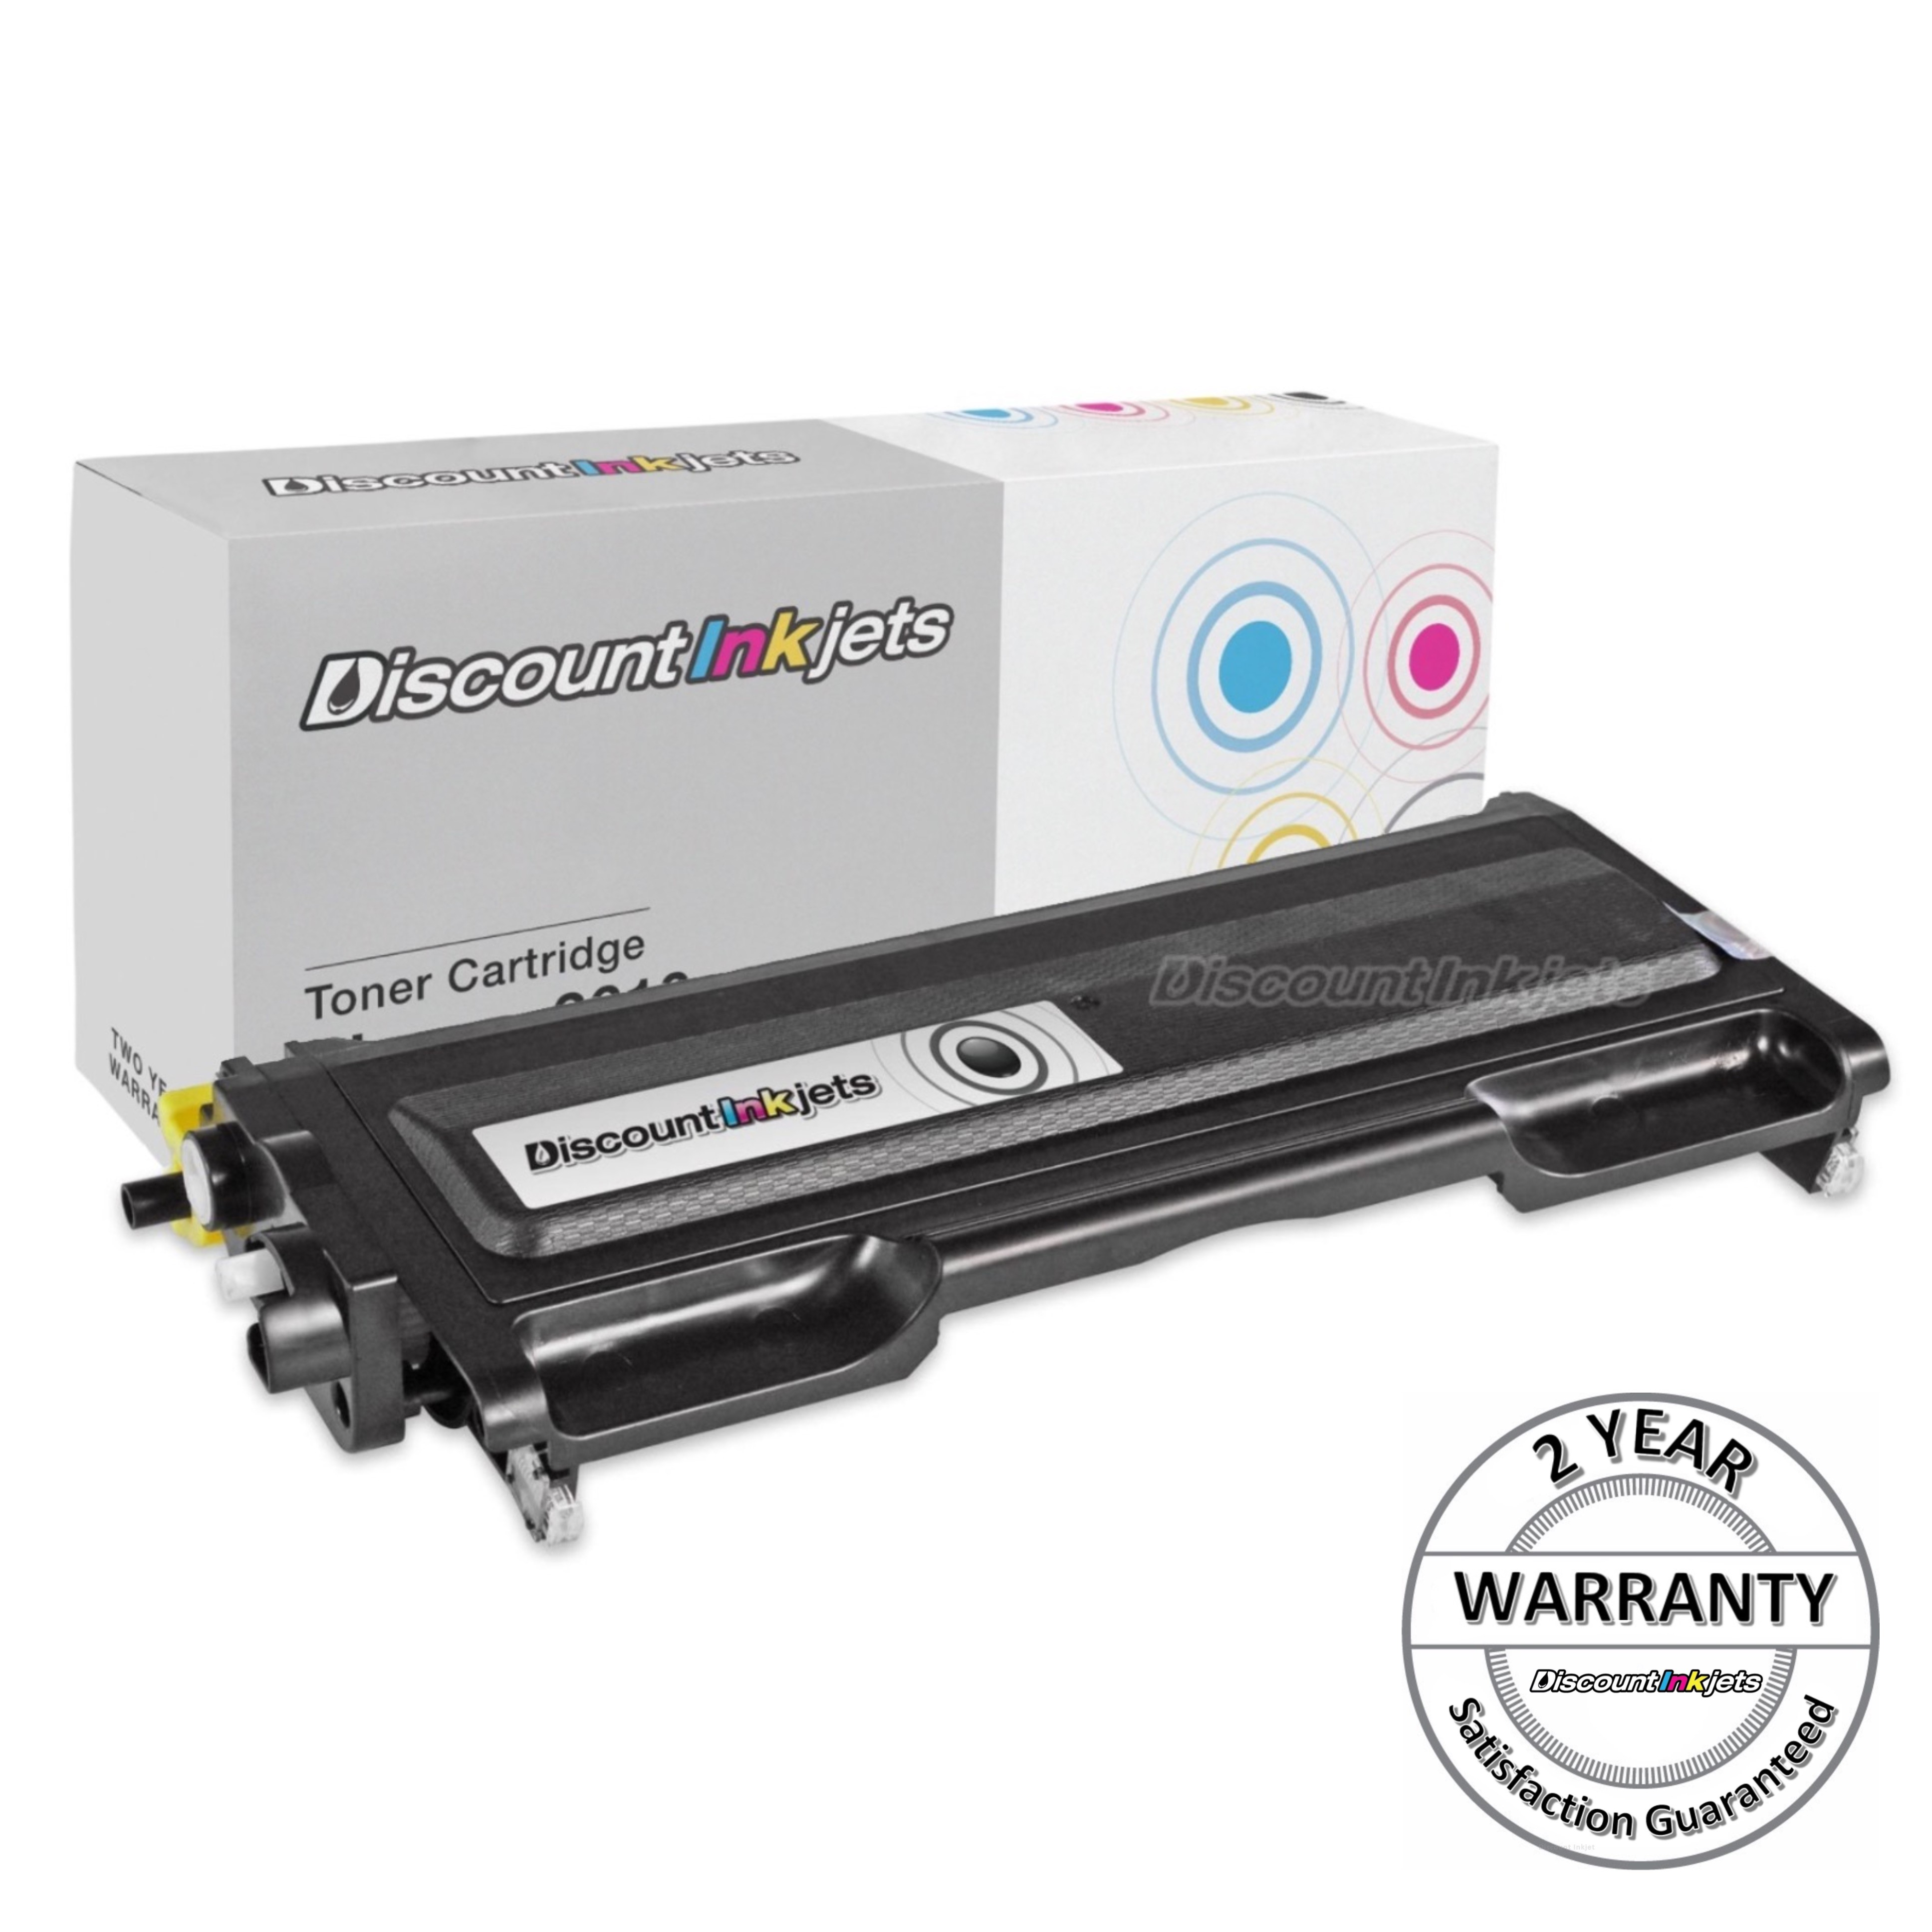 2PK TN-350 350 Toner Cartridges for Brother MFC-7225N 7220 DCP-7020 7010 7025